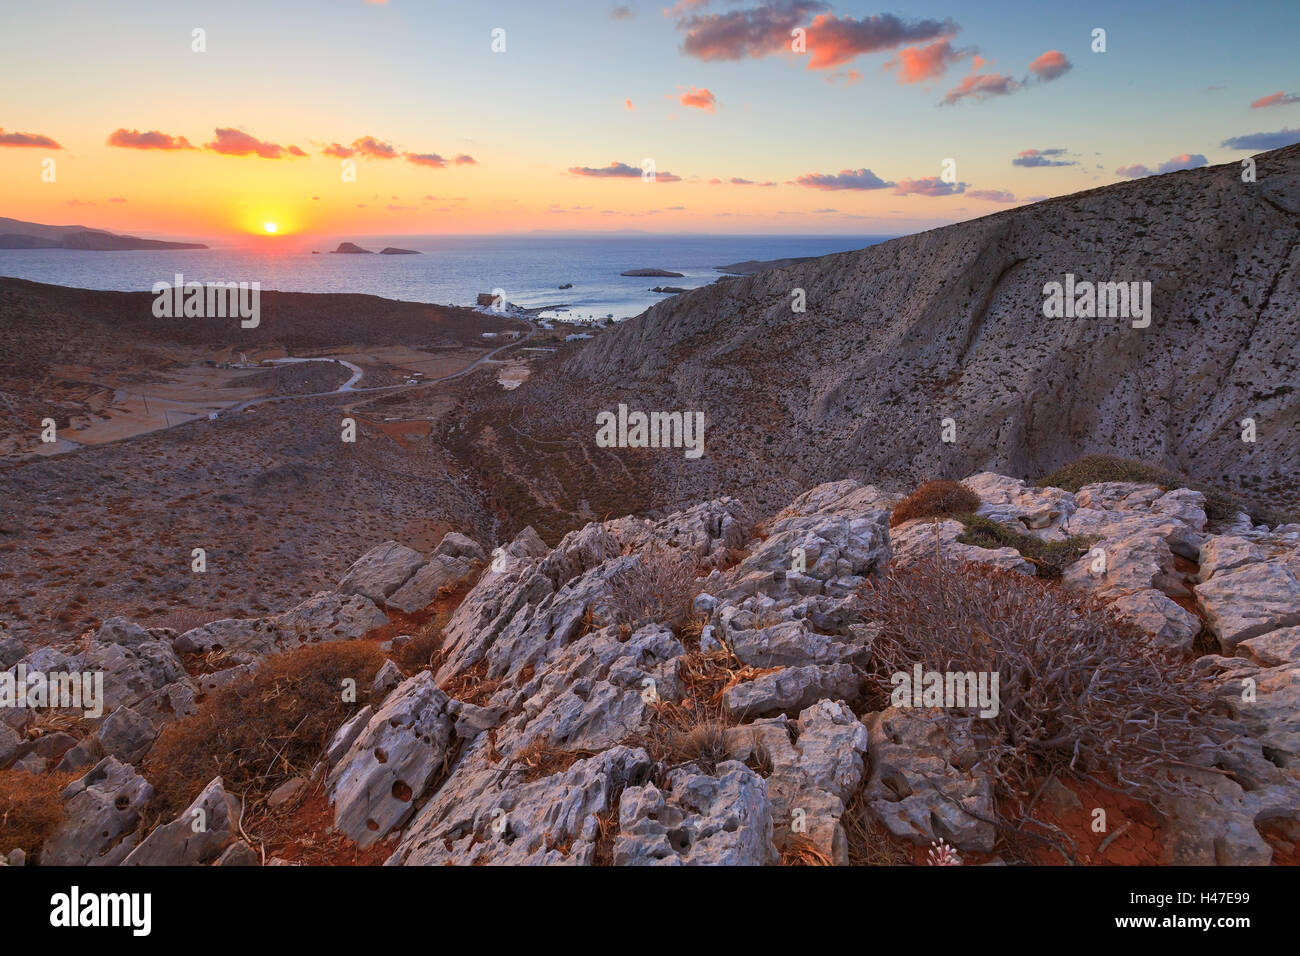 View of Karavostasis village from a nearby mountain. - Stock Image